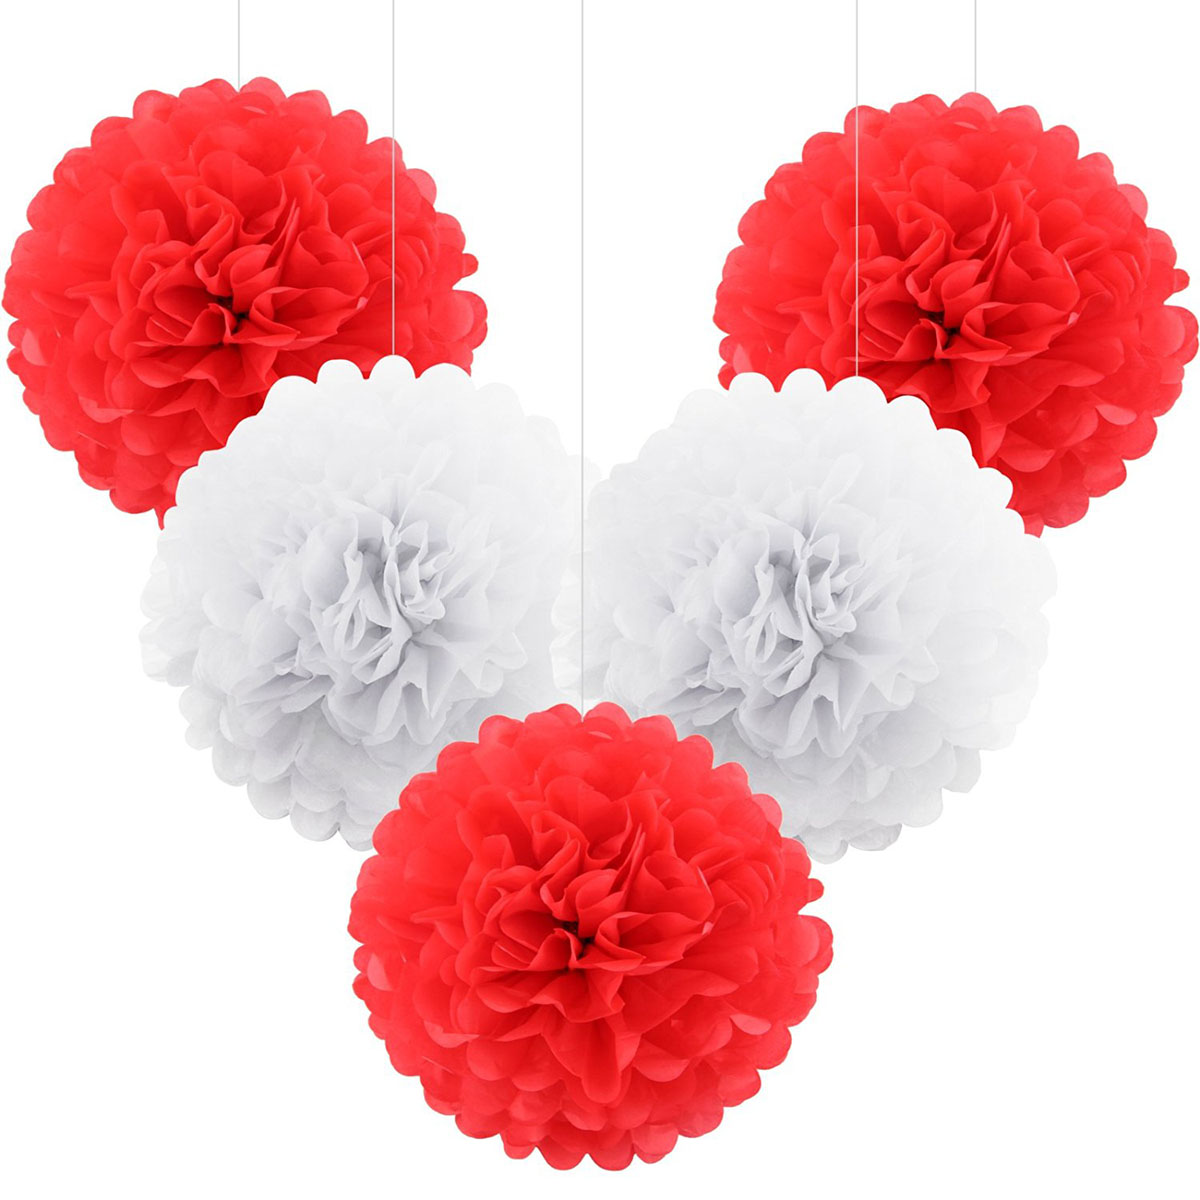 Birthday party backdrop tissue paper pom poms product on alibaba com - 5pcs Paper Flowers Ball Wedding Home Birthday Party Car Decoration Tissue Paper Pom Poms China